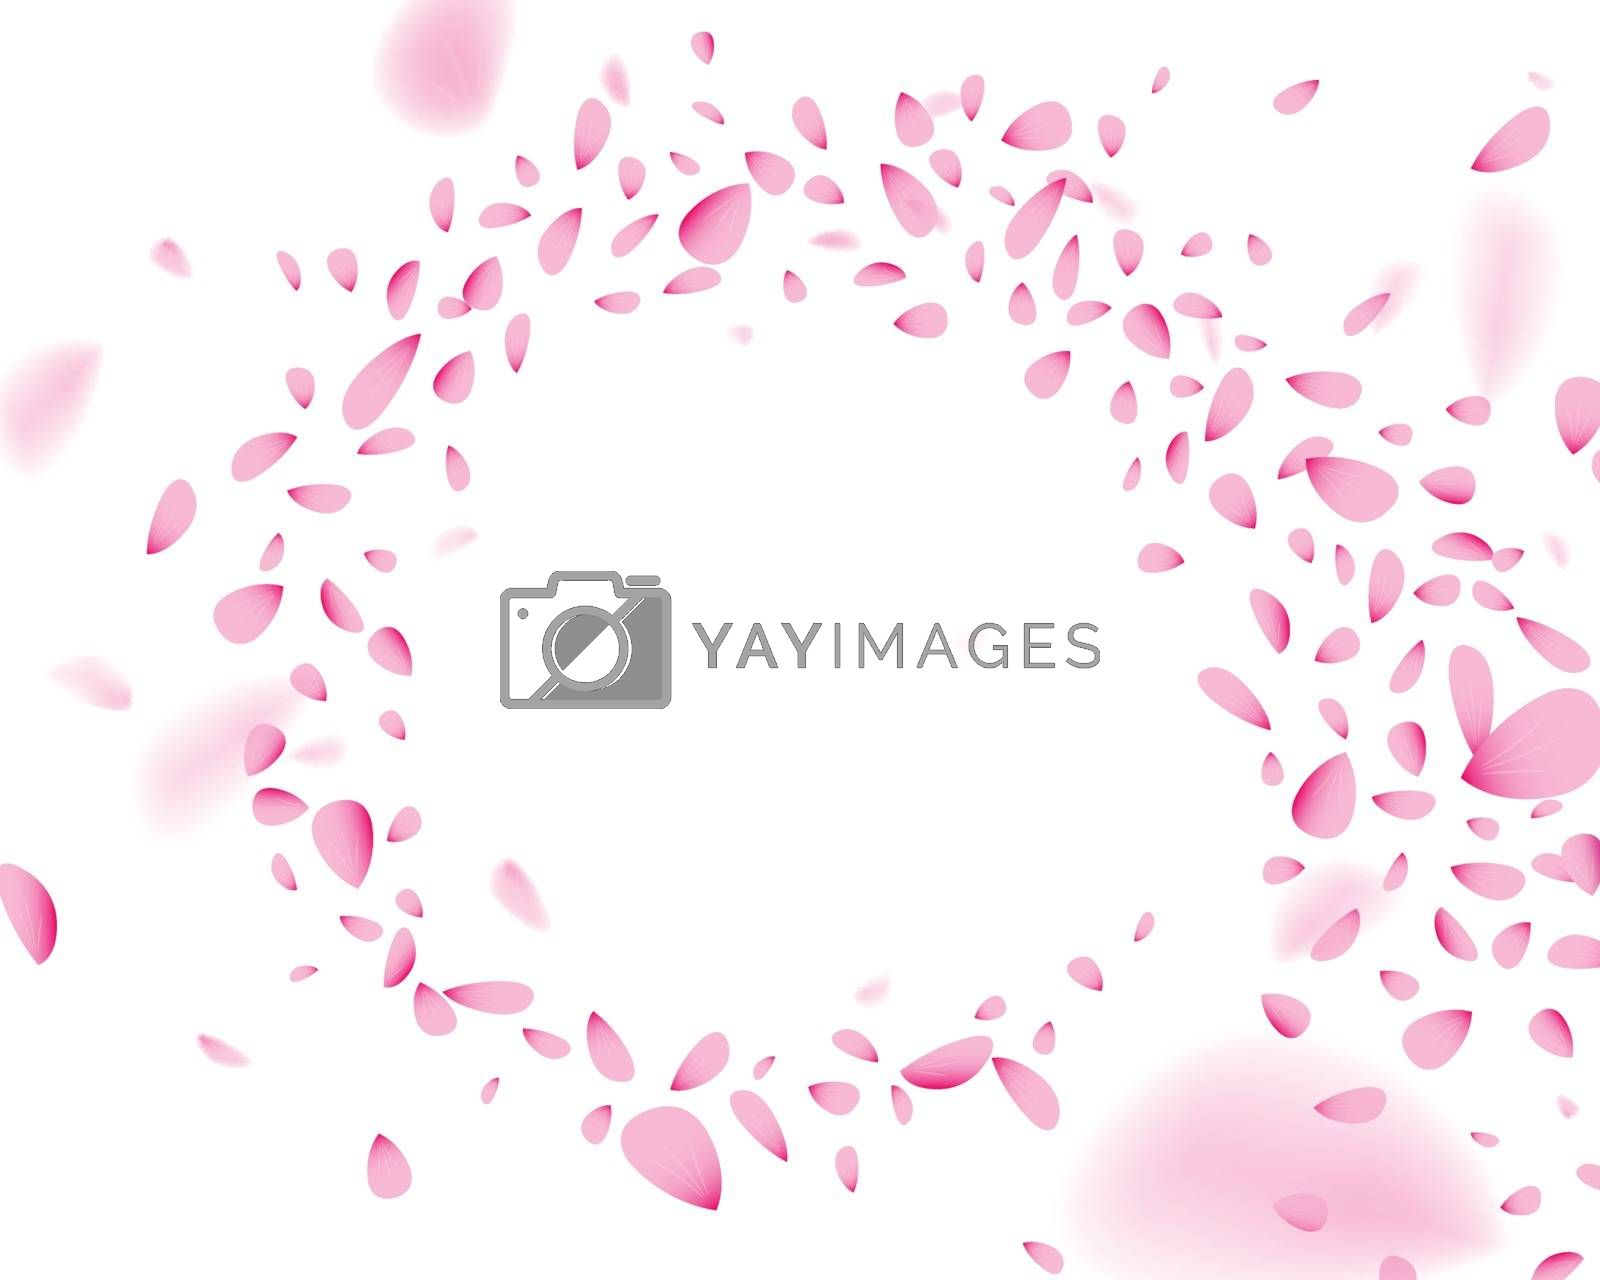 Swirling pink flower petals in the wind, on white isolated background. Soft elegant decoration element with blurred effect, 3D illustration.